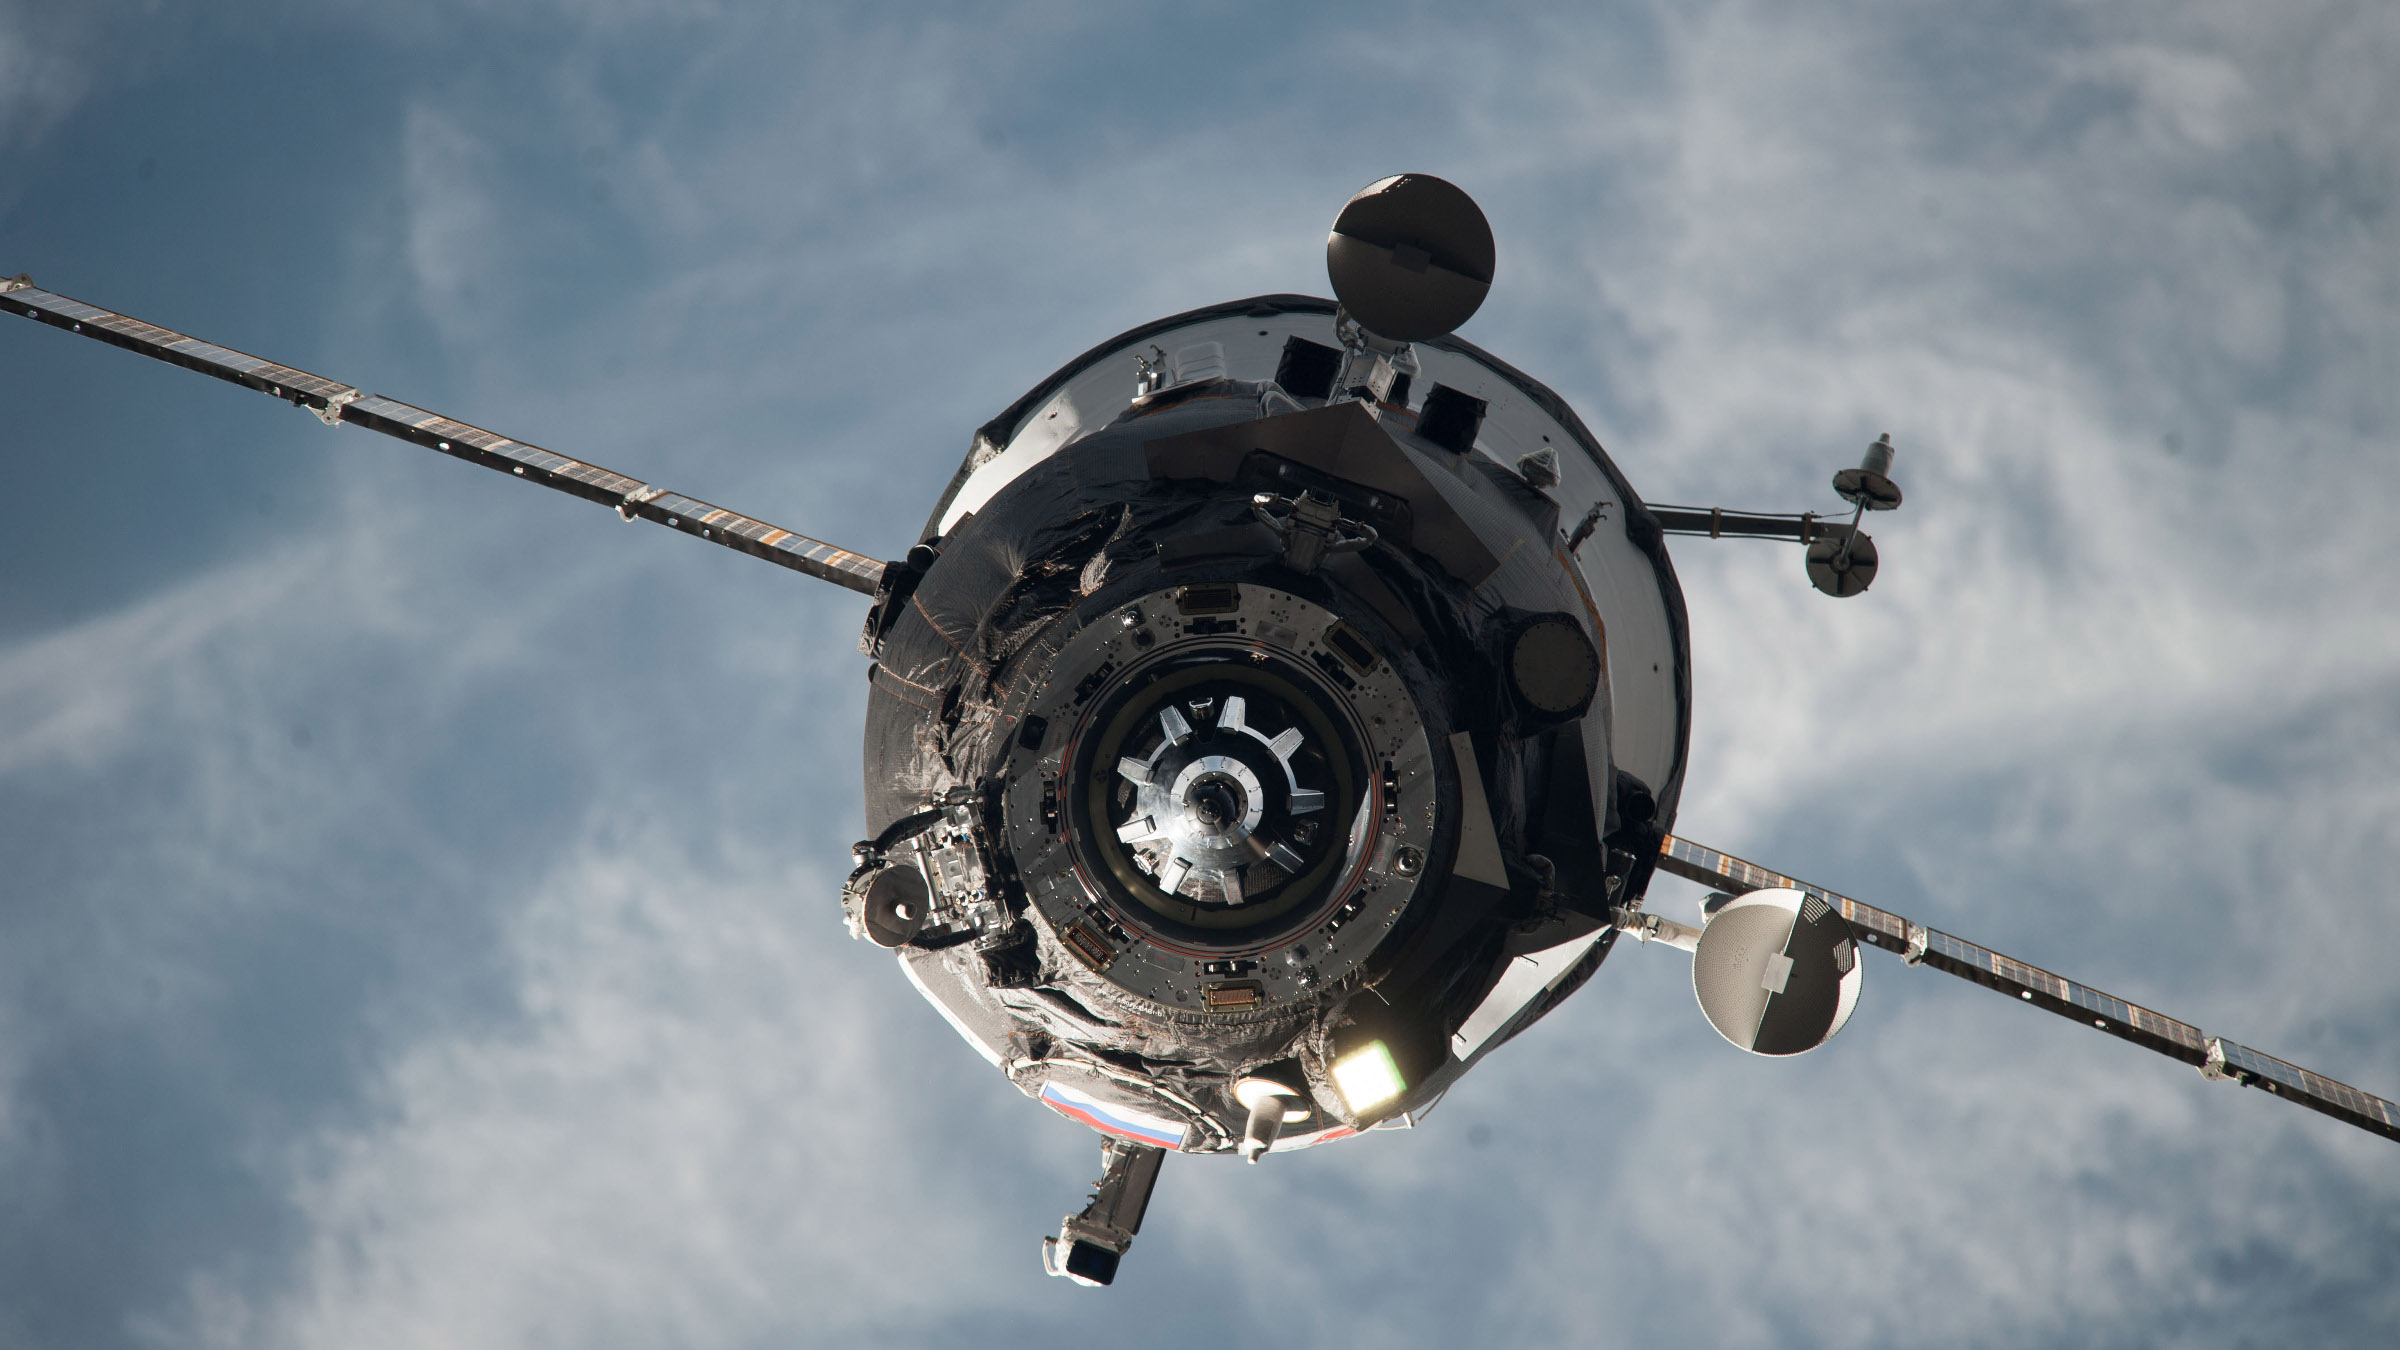 In this Feb. 5, 2014 photo provided by NASA, an ISS Progress resupply vehicle approaches the International Space Station. On Wednesday, April 29, 2015, NASA and the Russian Space Agency declared a total loss on an unmanned Progress capsule, carrying 3 tons of goods to the station. The spacecraft began tumbling when it reached orbit Tuesday, following launch from Kazakhstan, and flight controllers were unable to bring it under control.